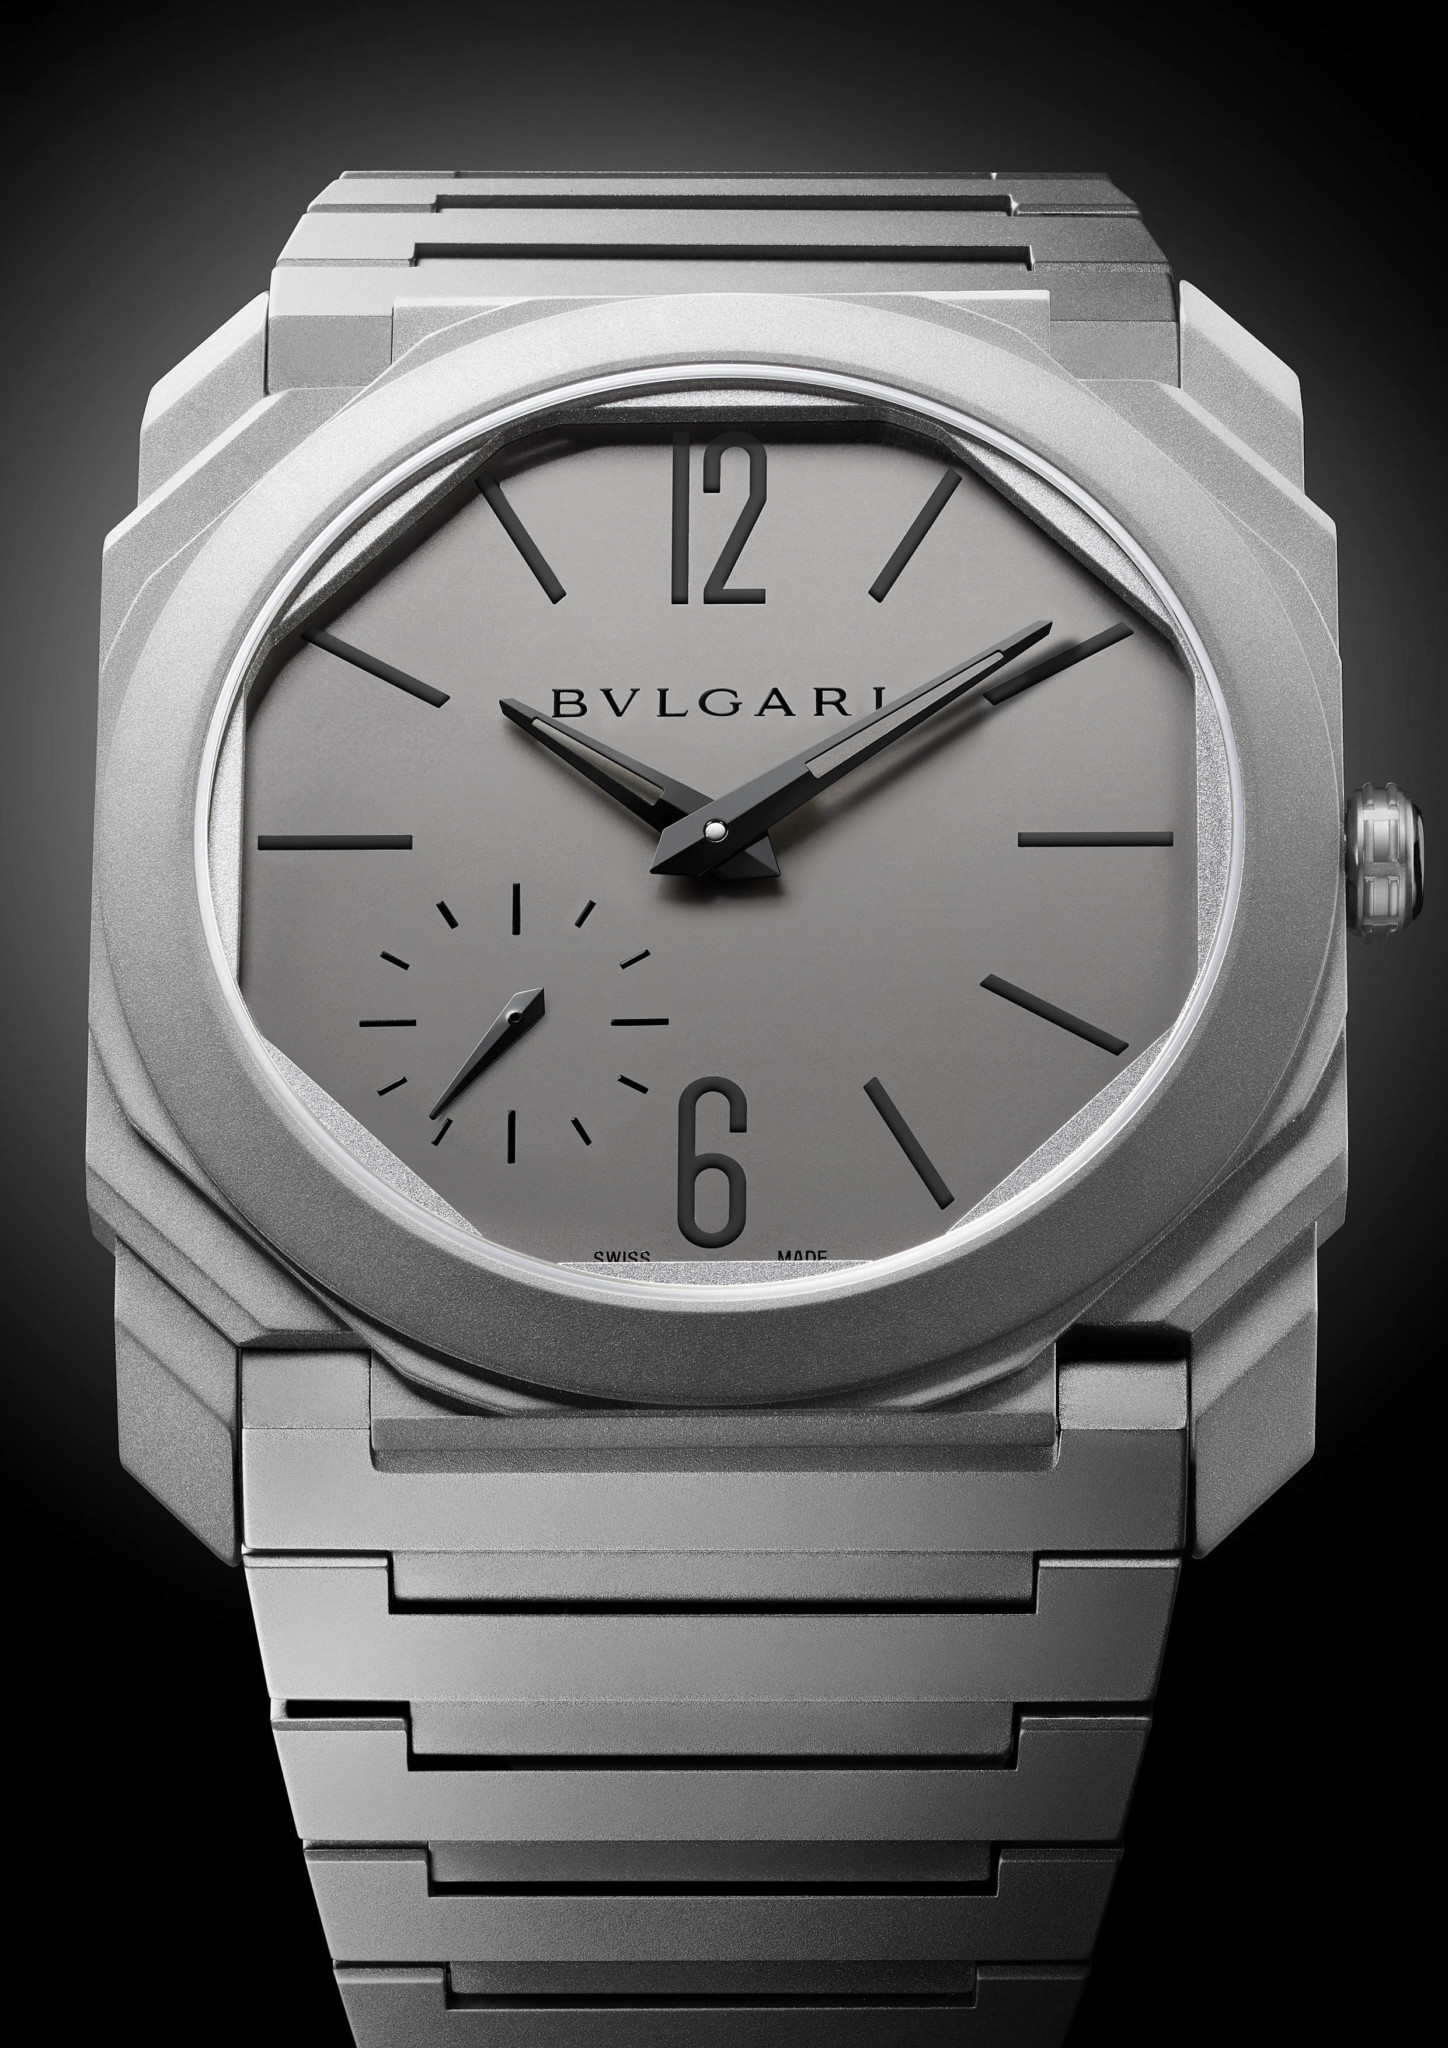 Men's Watch Prize: Bvlgari, Octo Finissimo Automatic.